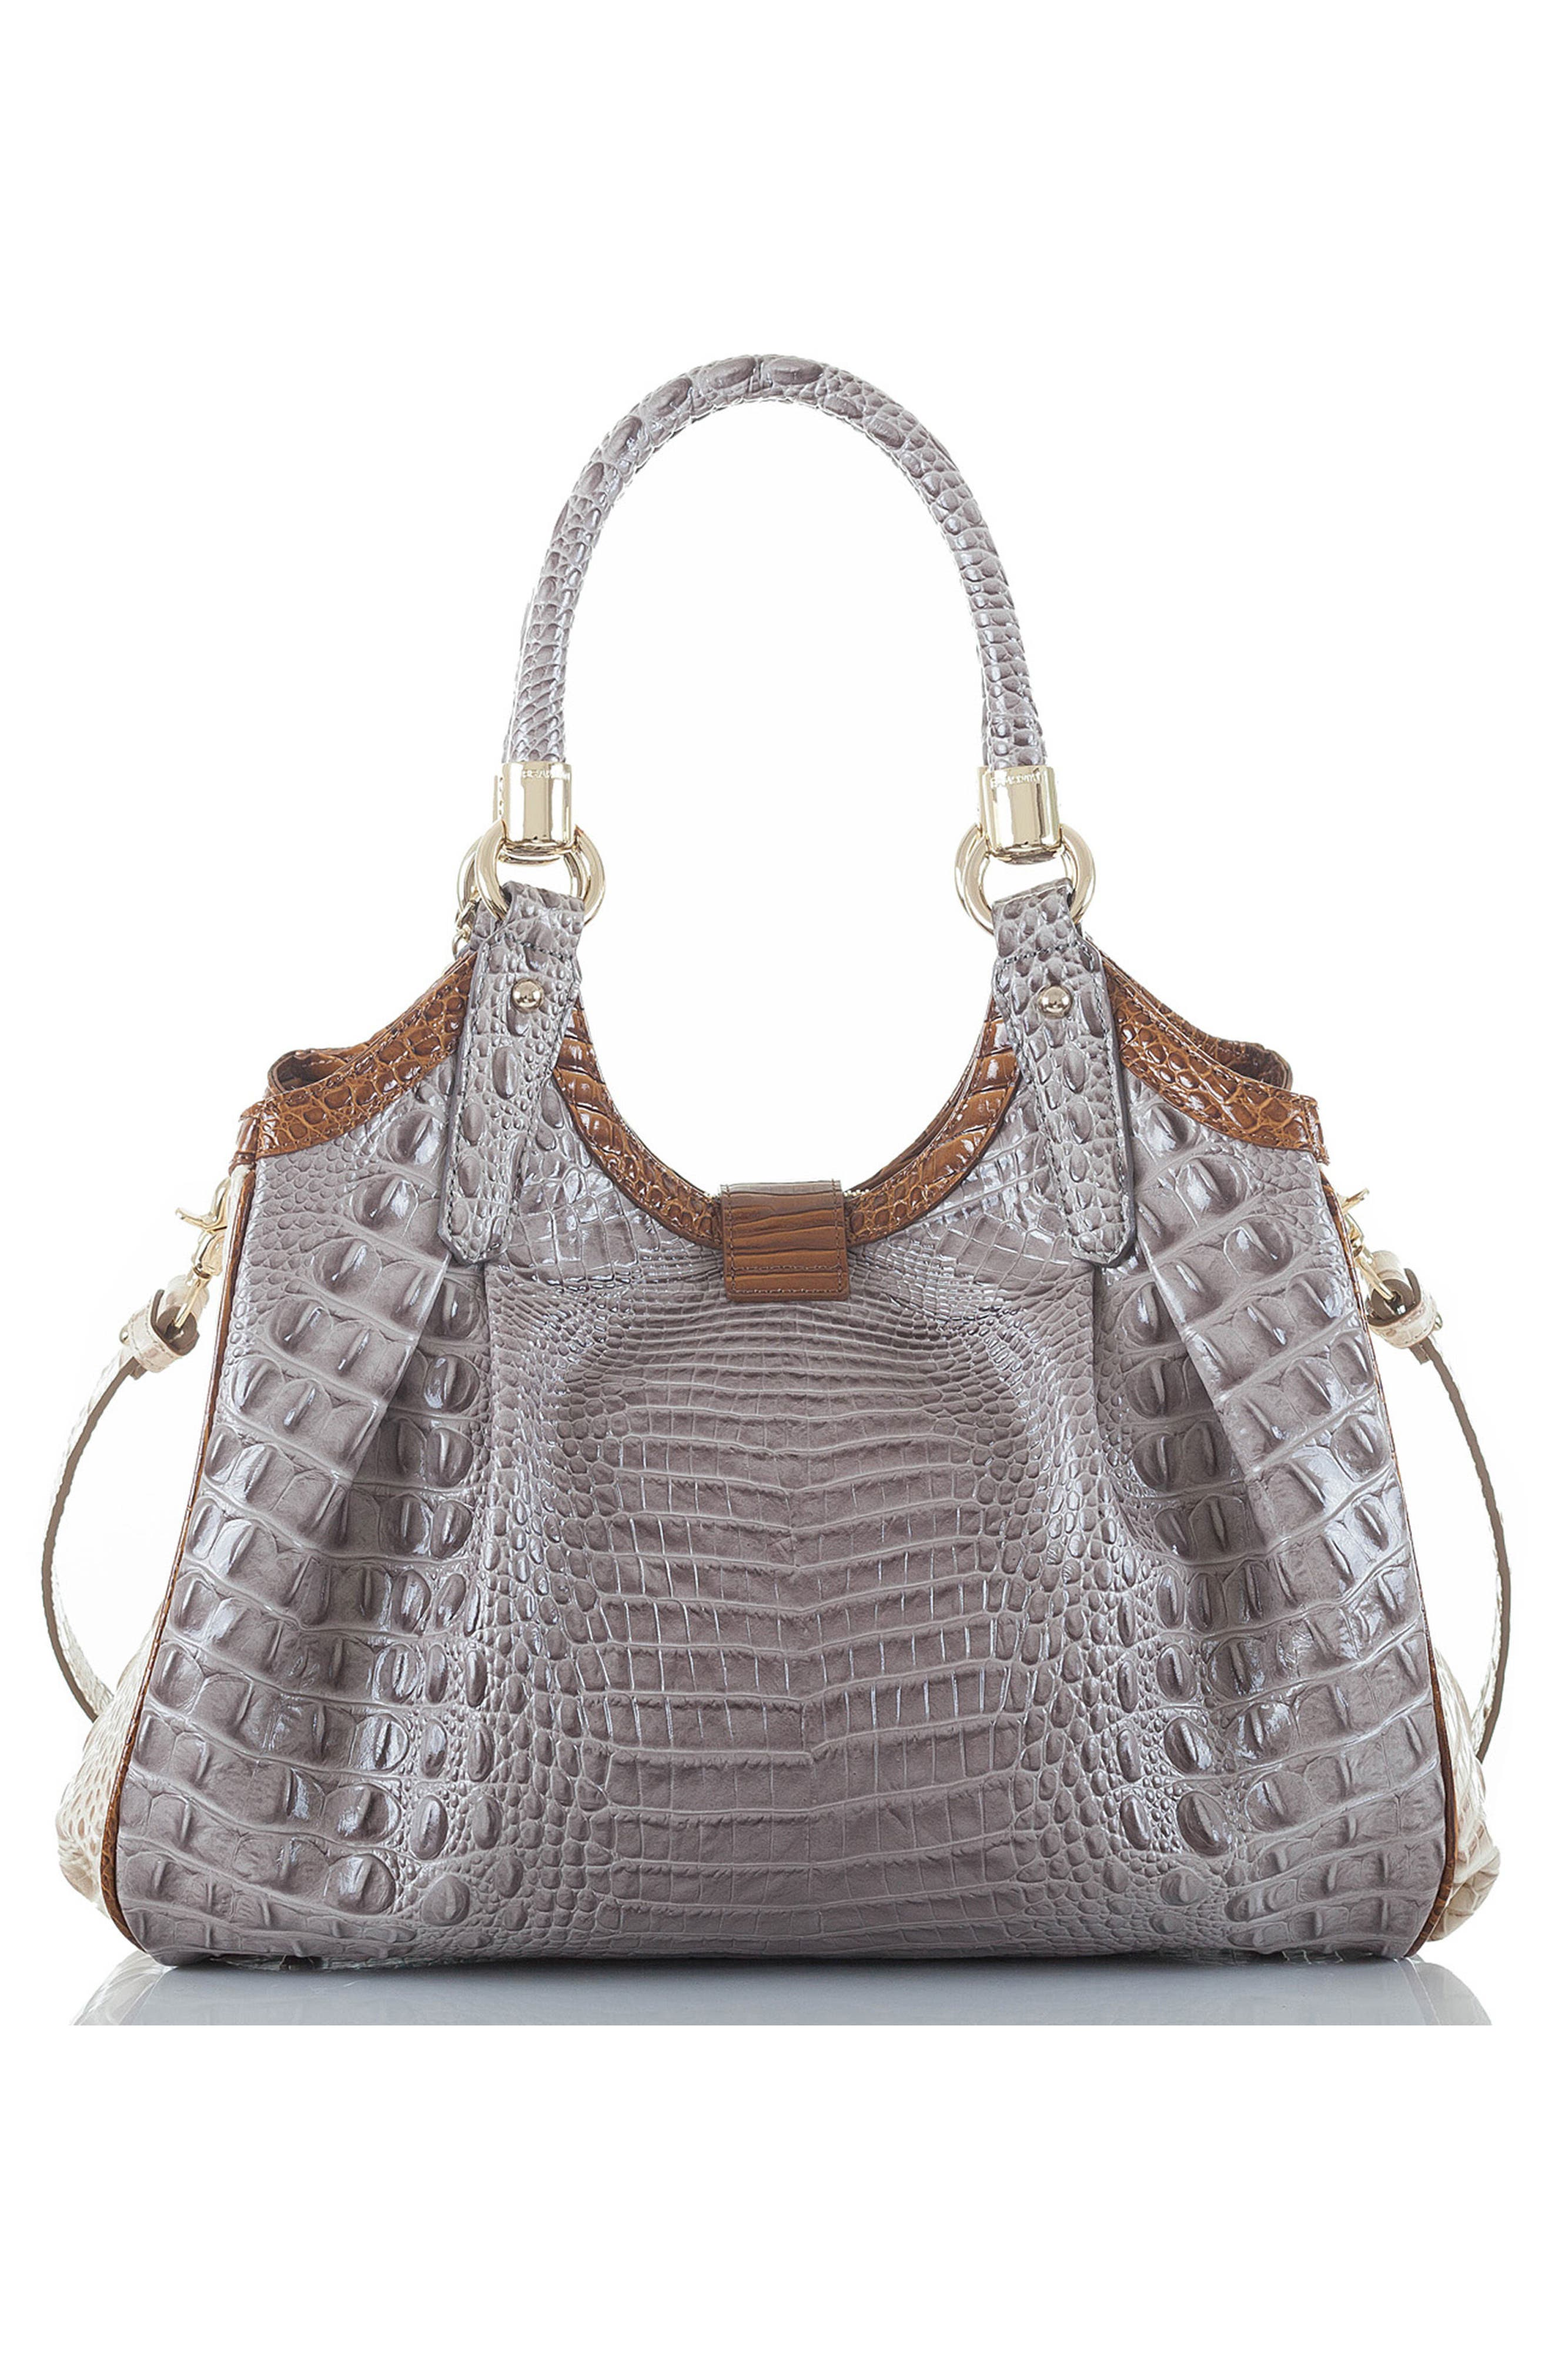 Elisa Croc Embossed Leather Shoulder Bag,                             Alternate thumbnail 2, color,                             032